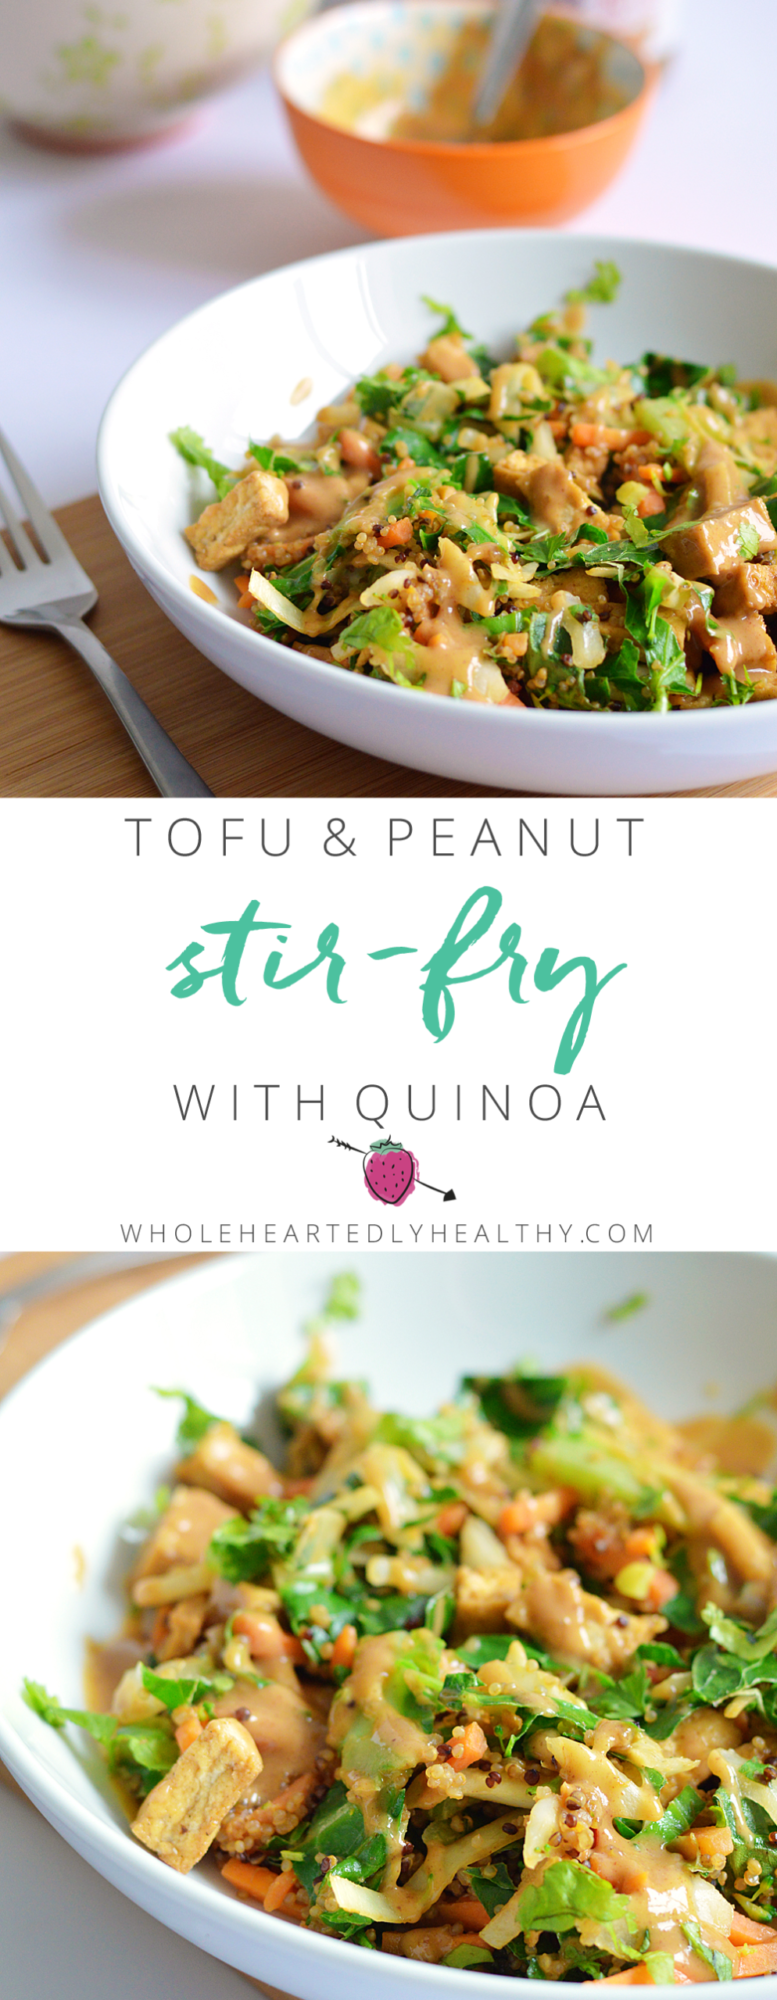 Tofu and peanut stir fry